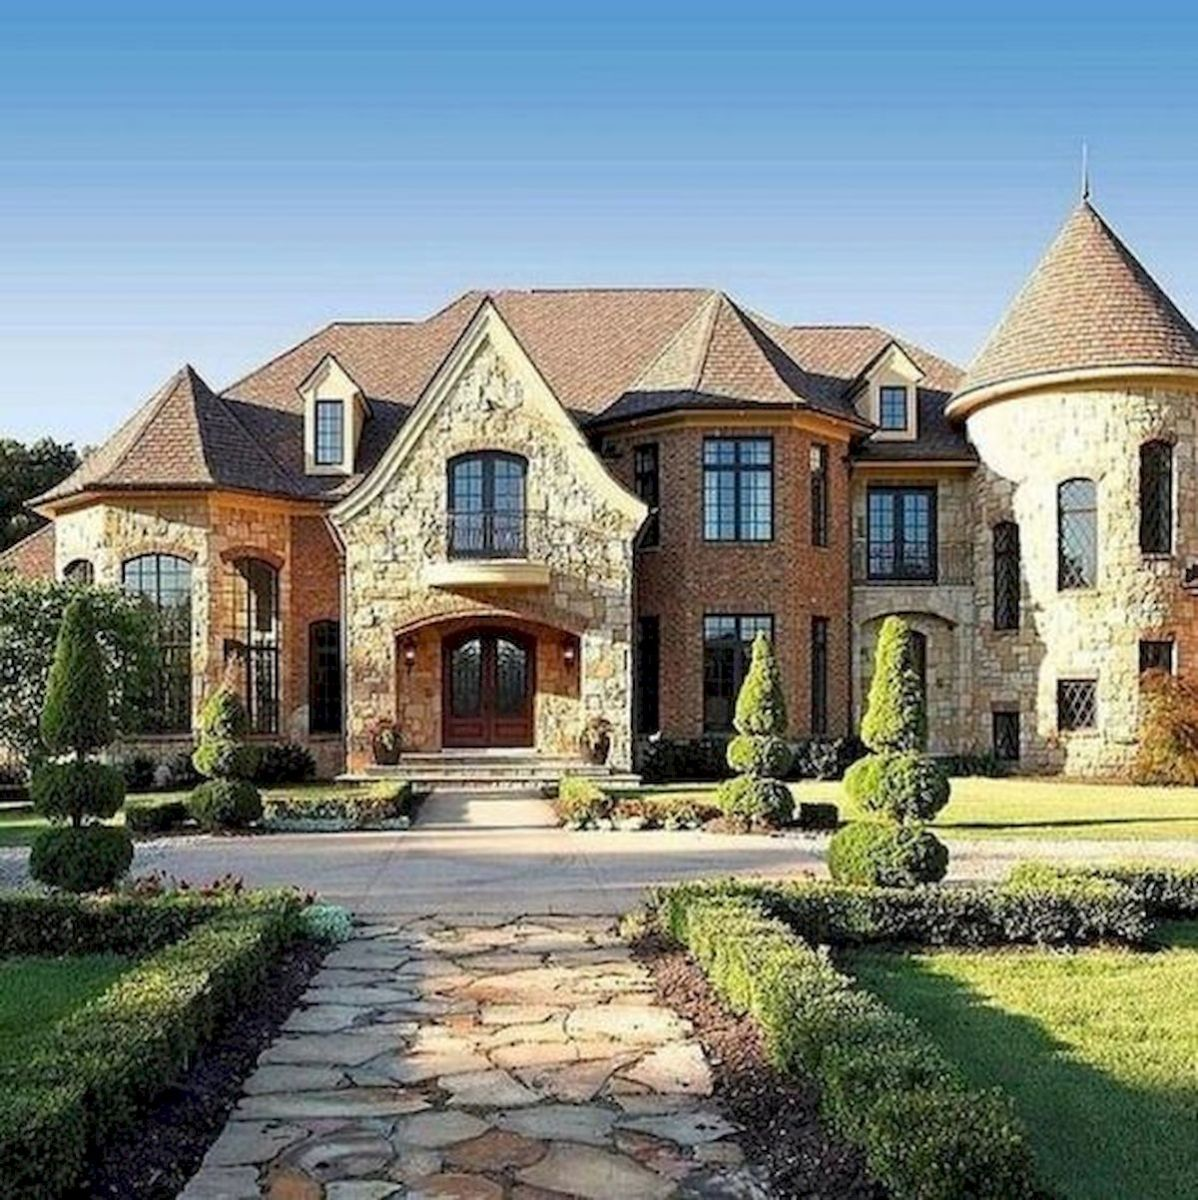 67 Stunning Dream House Exterior Design Ideas (57)